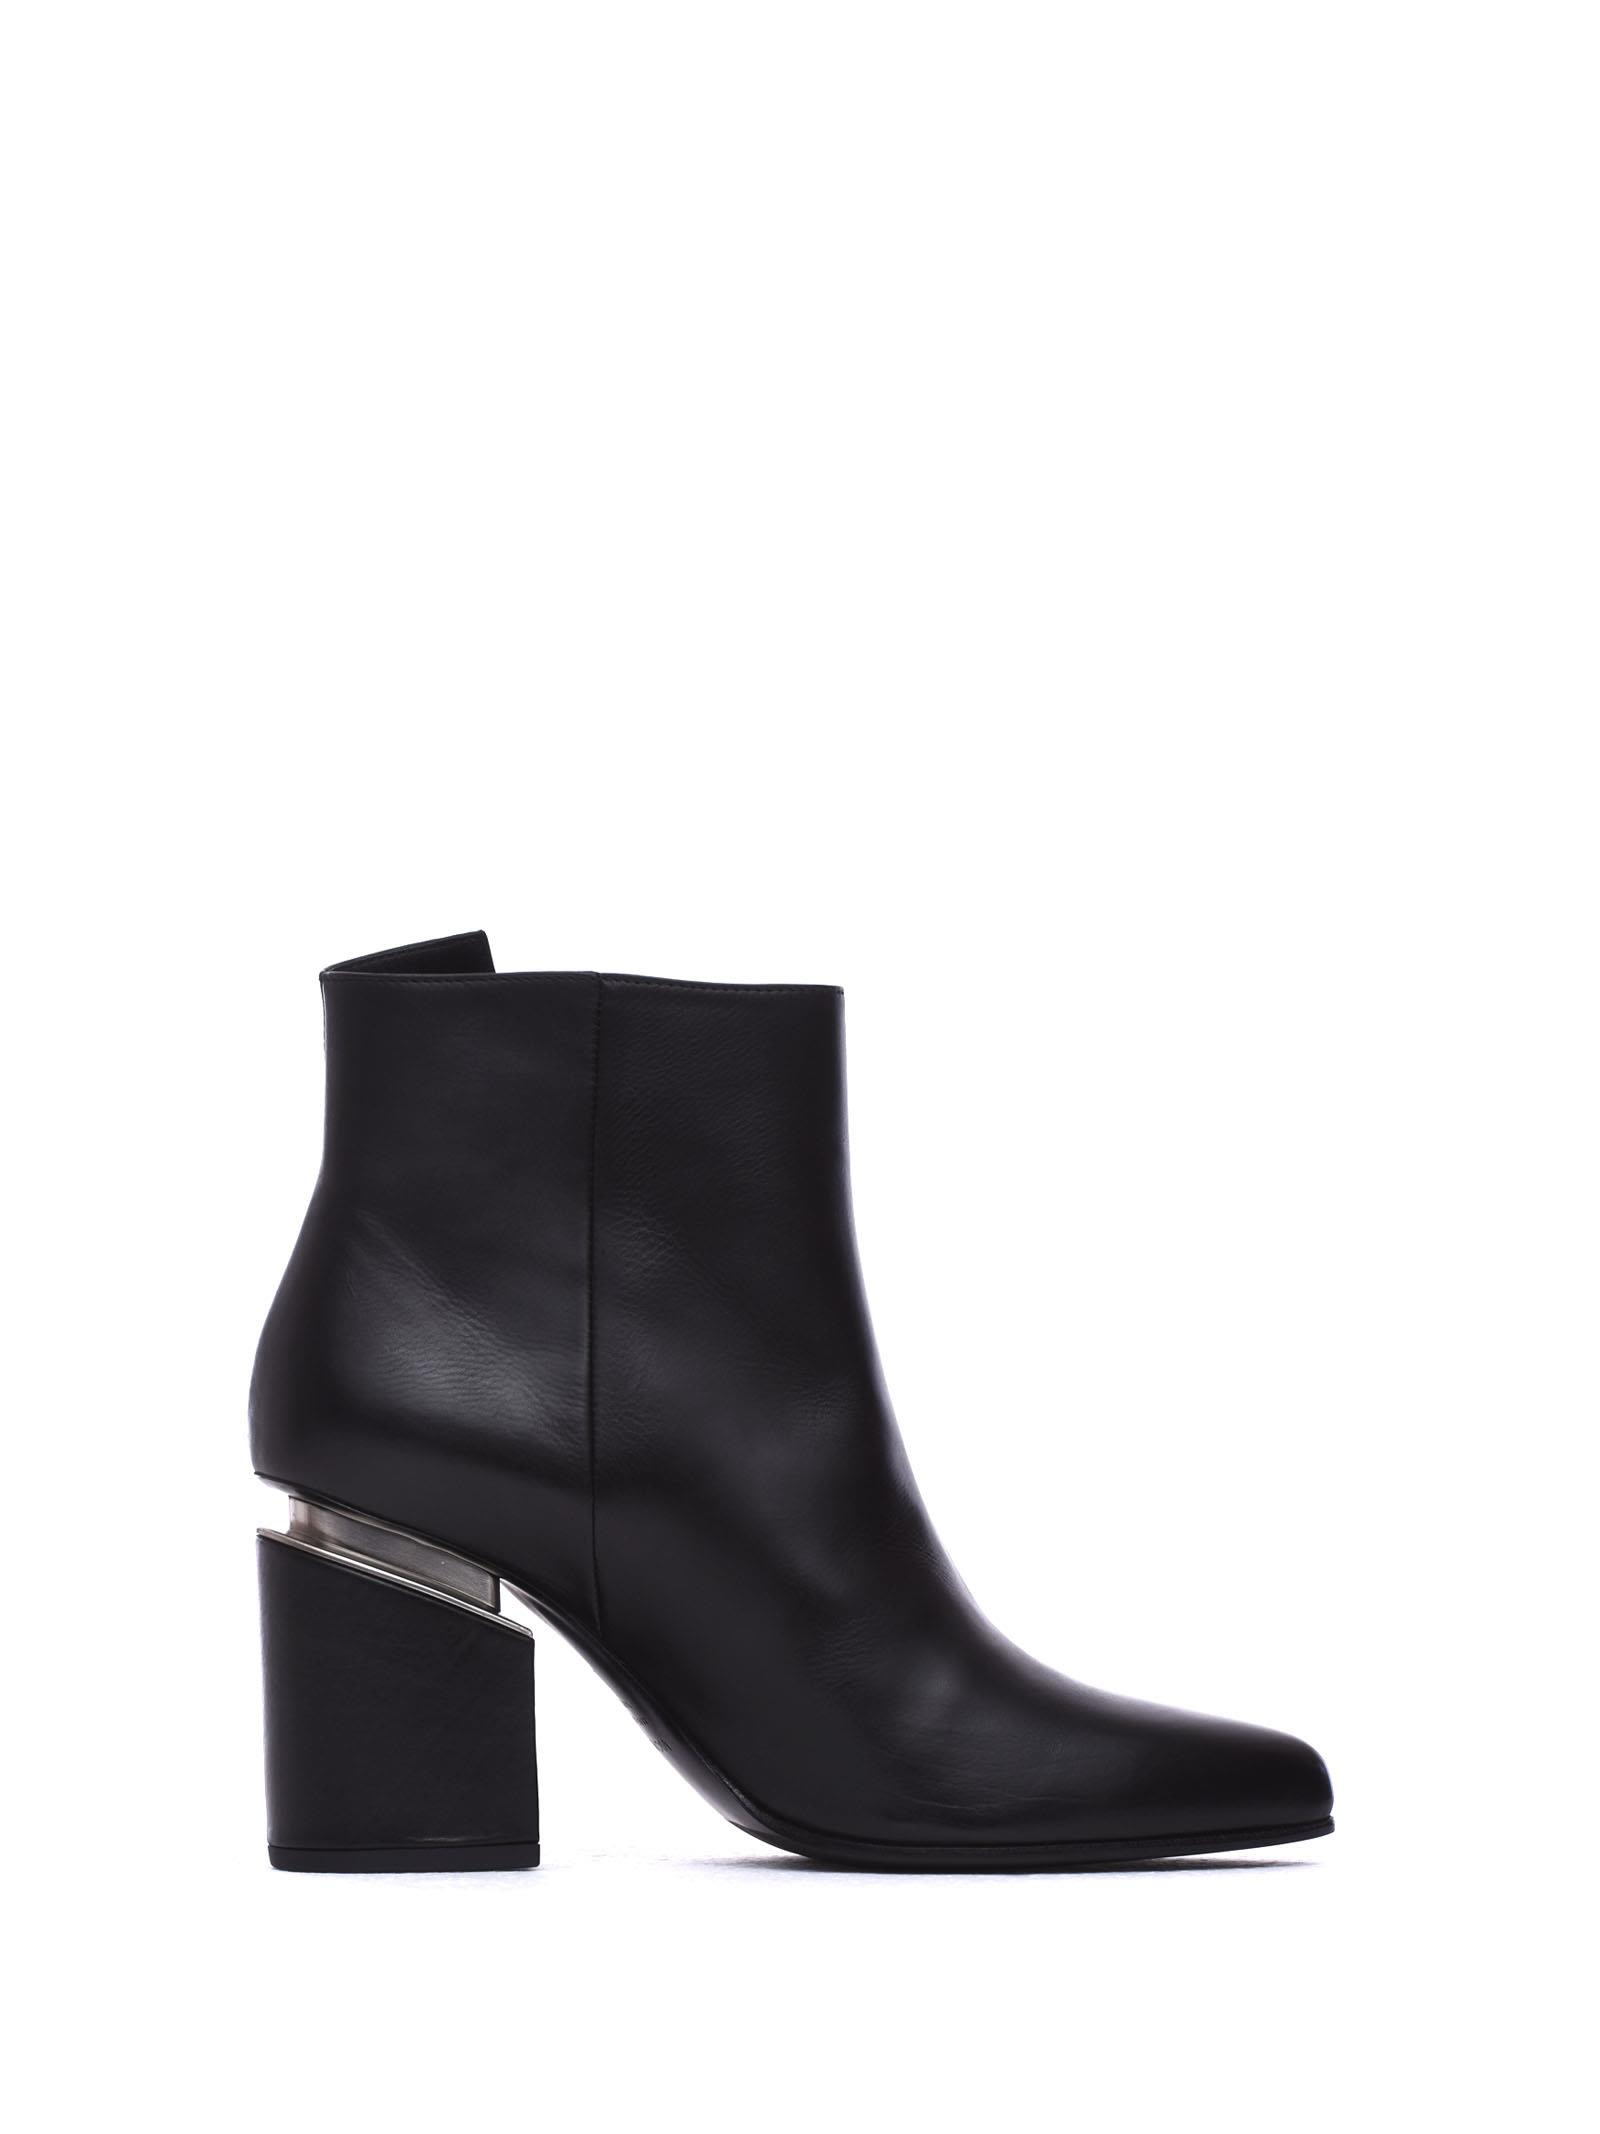 VIC MATIE Heeled Ankle Boots With Maxi Zip And Suspended Heel in Nero